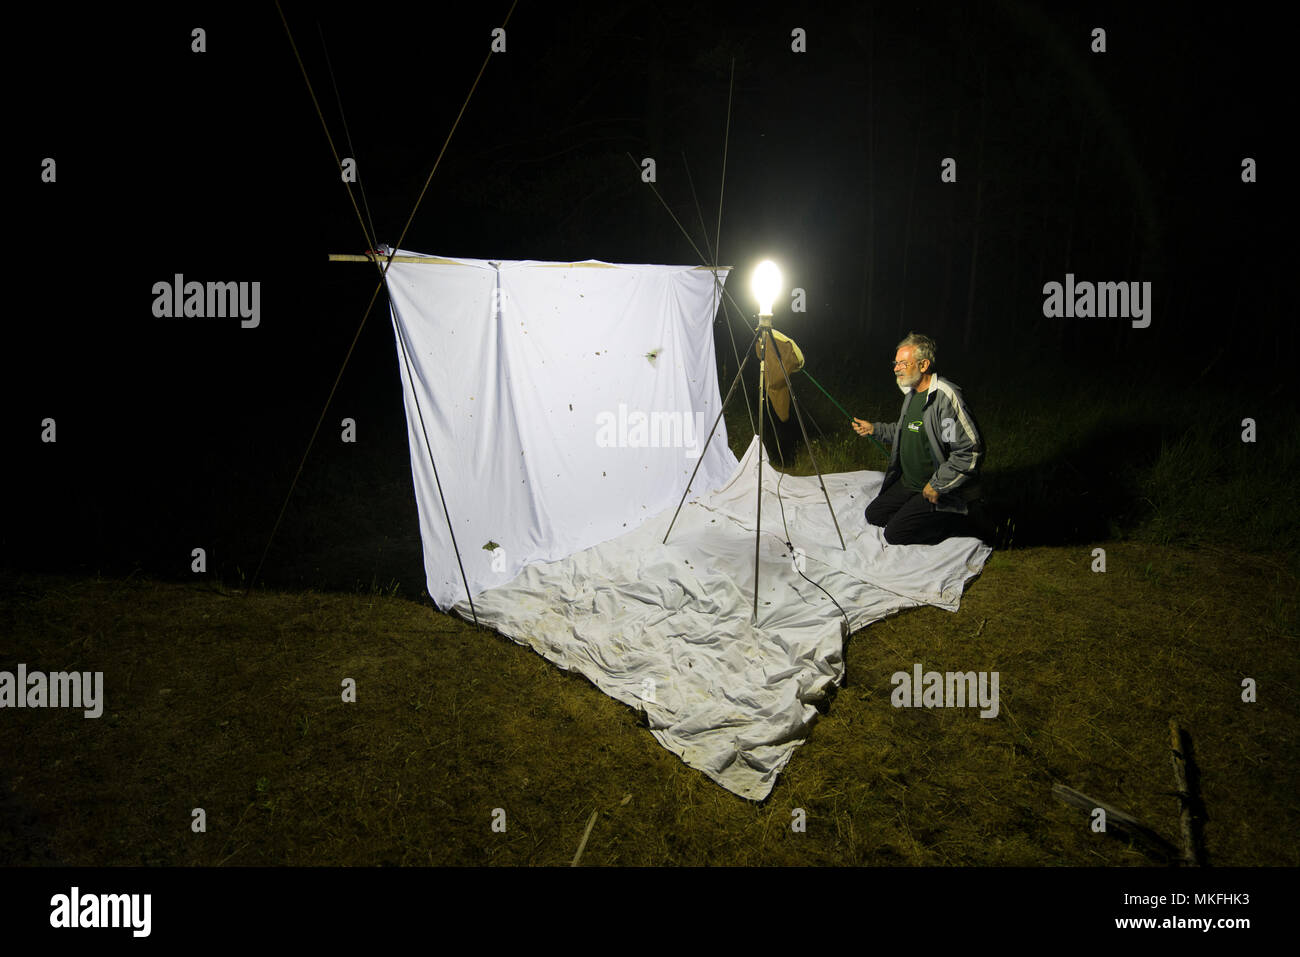 Spanish moon moth (Graellsia isabellae) catching on Insect trap at night, The Ports Natural Park, Terres de L'Ebre, Tarragona, Catalonia, Spain, Europe Stock Photo